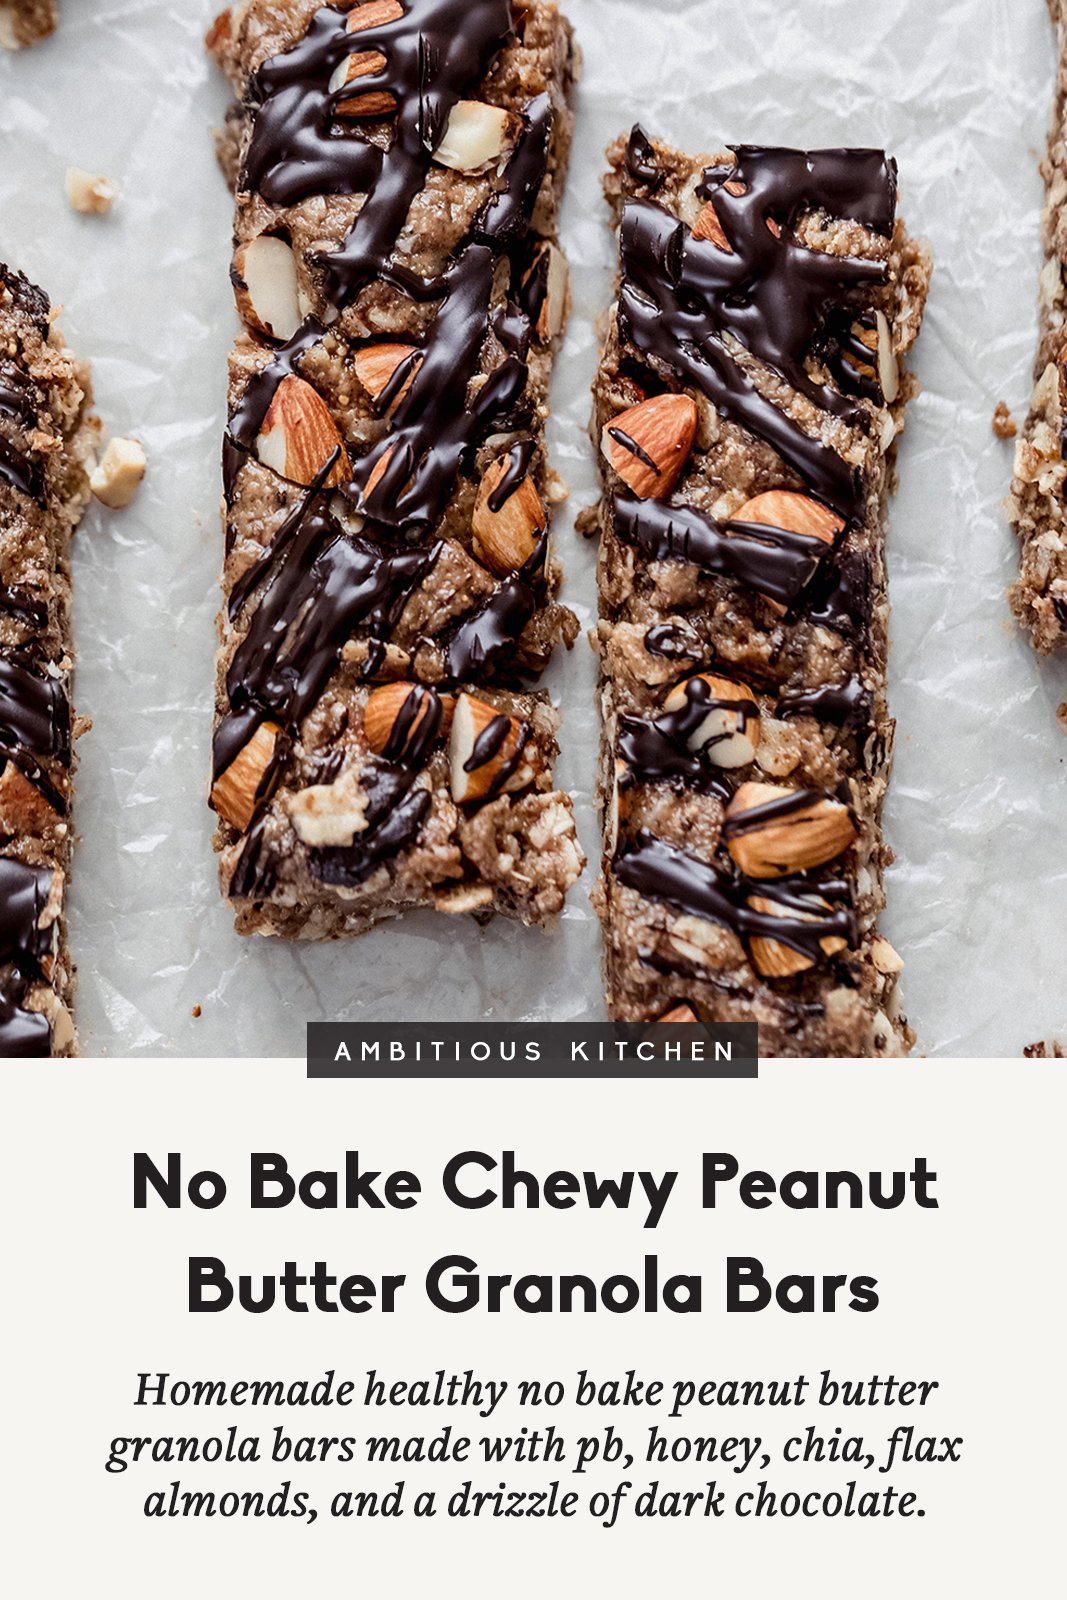 peanut butter granola bars with text overlay